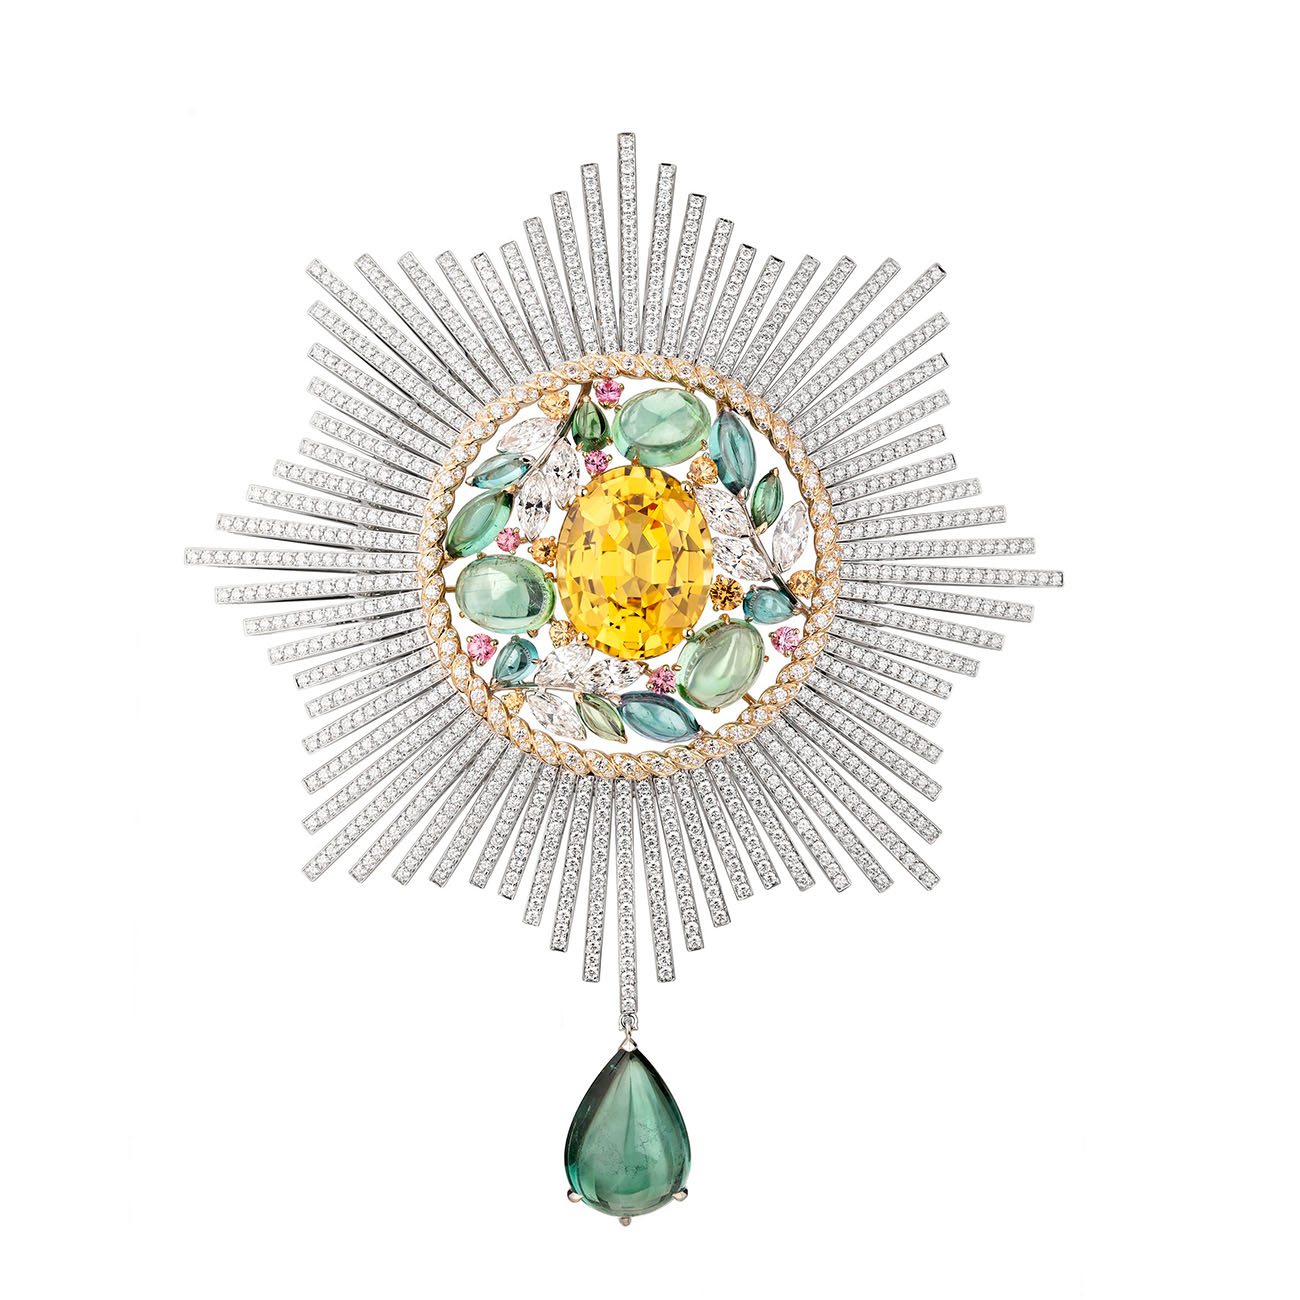 Chanel High Jewelry Collection LE PARIS RUSSE DE CHANEL Blé Maria brooch